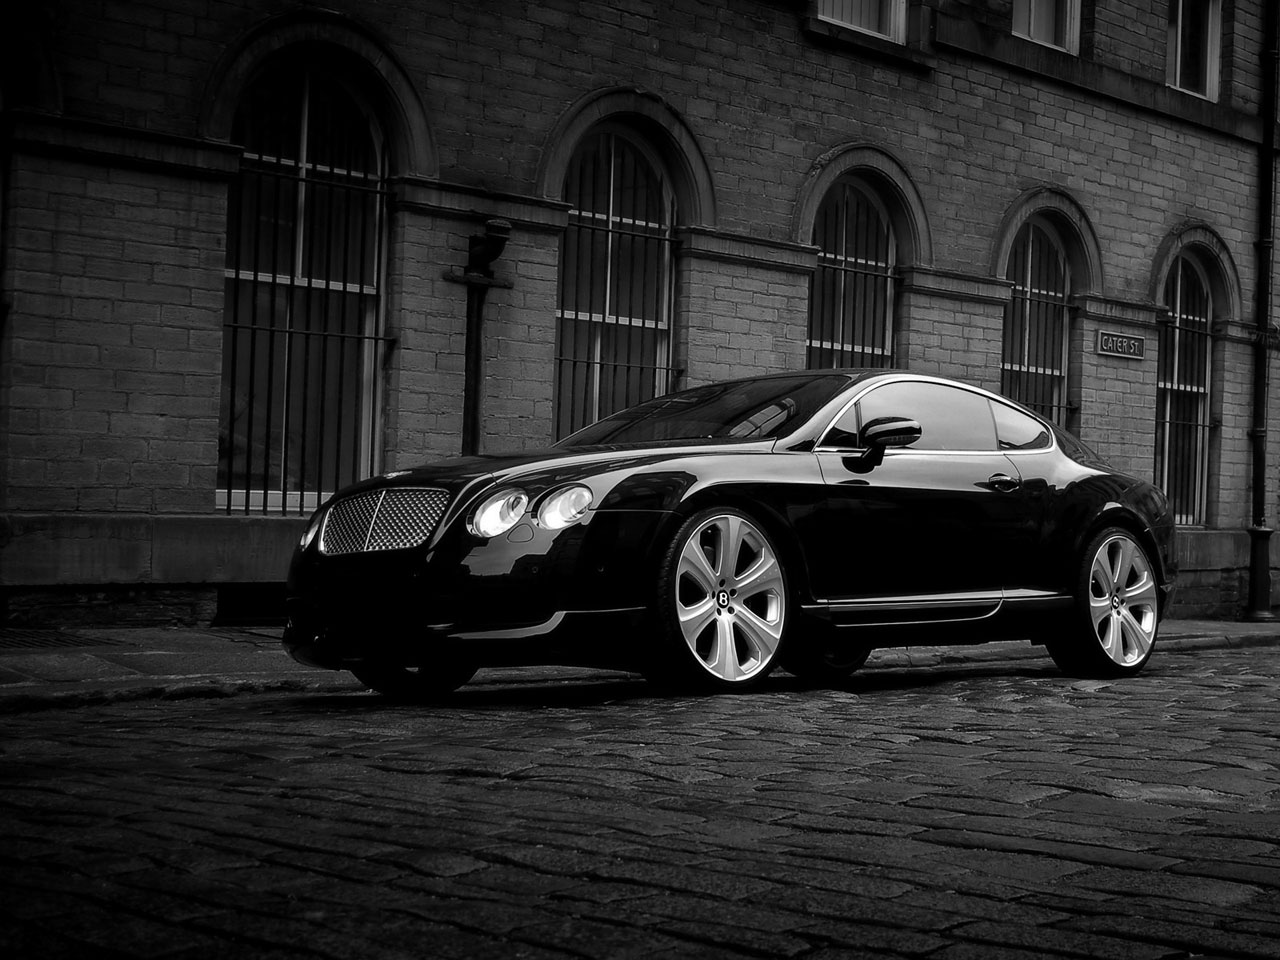 Cool Wallpapers: Bentley Cars